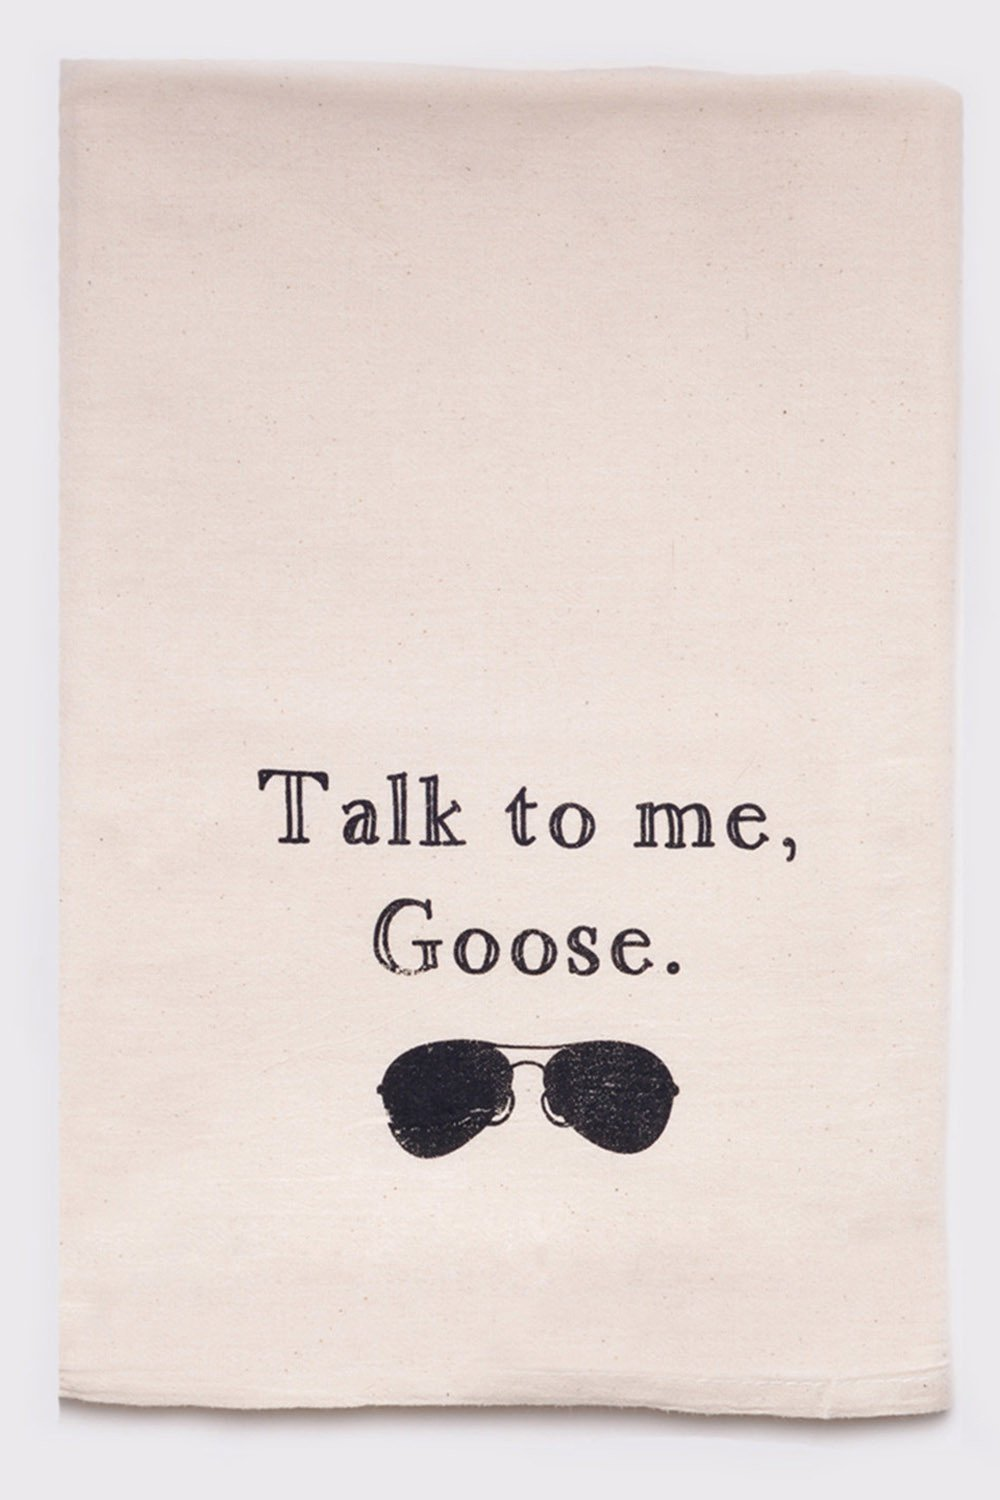 talk to me goose.